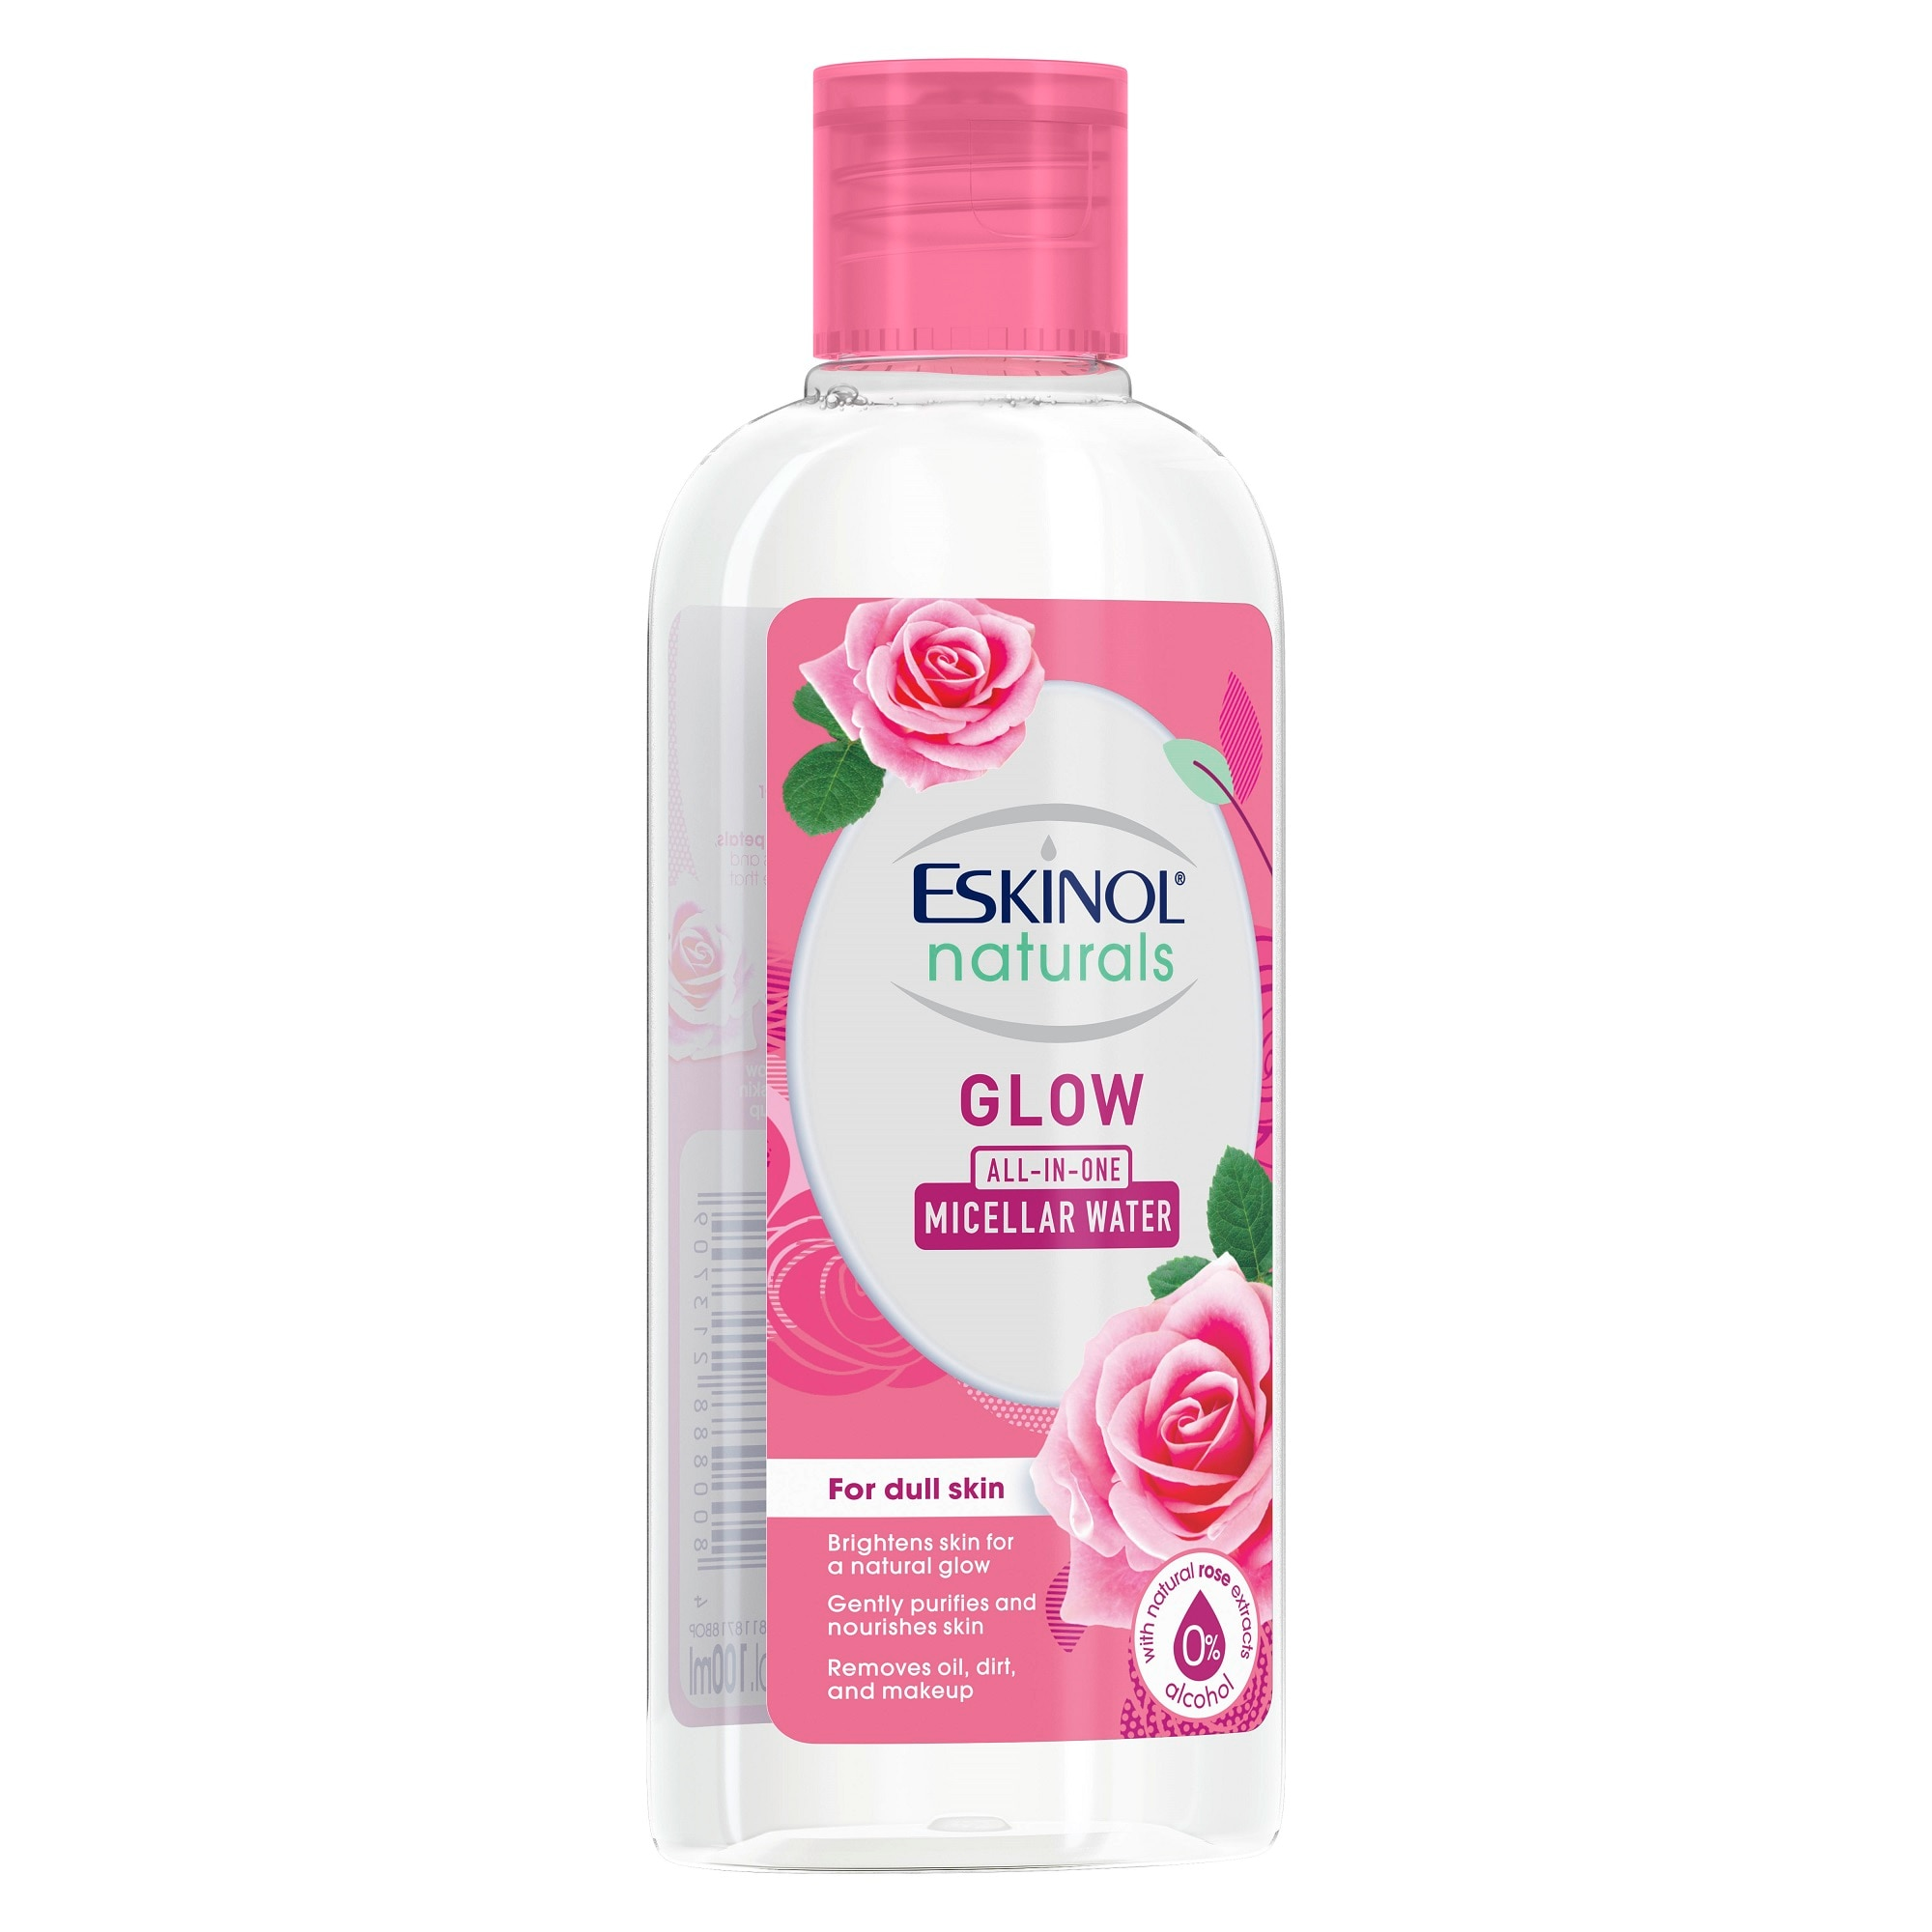 ESKINOLNaturals Micellar Water Glow with Natural Rose Extracts 100ml,For WomenEarth Day Sale